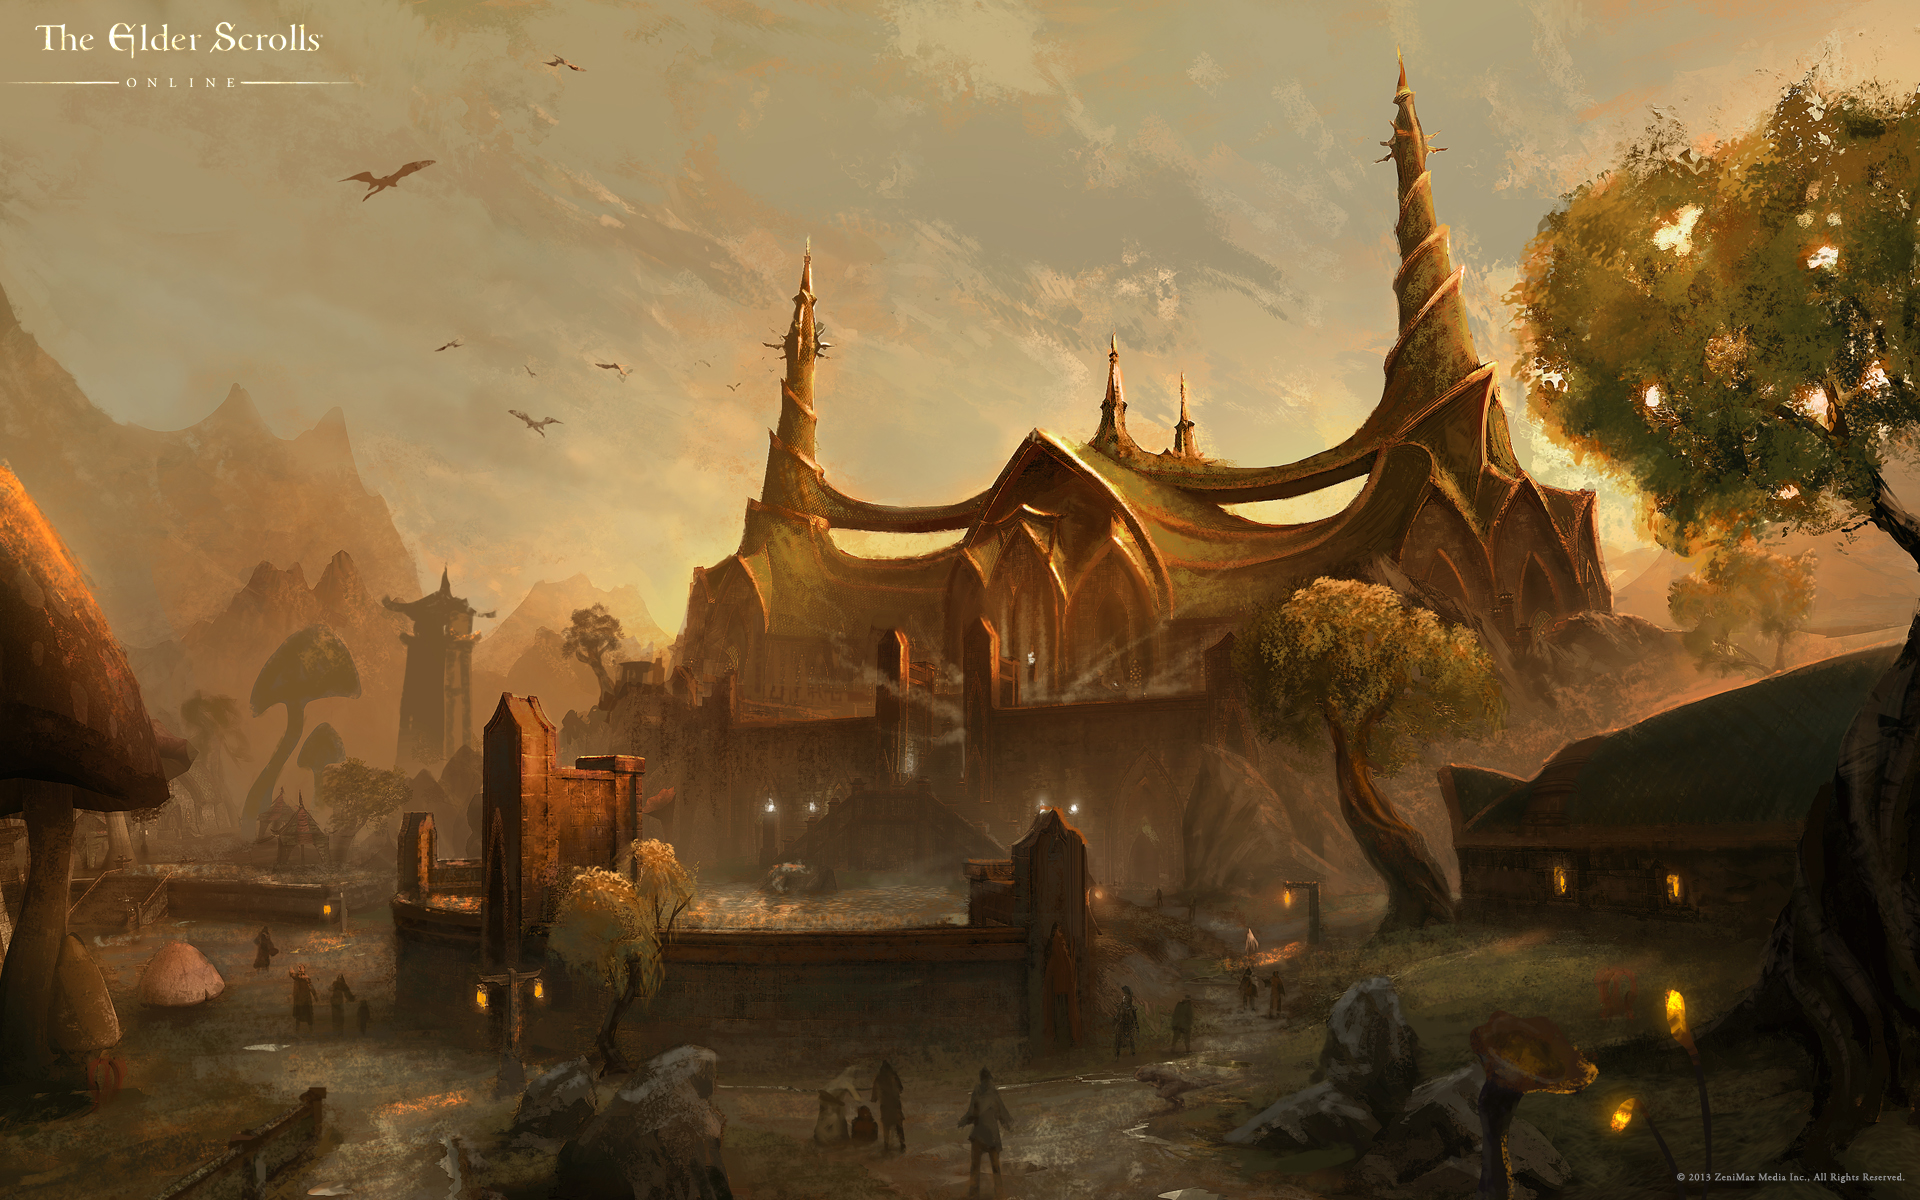 Wallpaper The Elder Scrolls Online: The Tribunal Temple in Mournhold